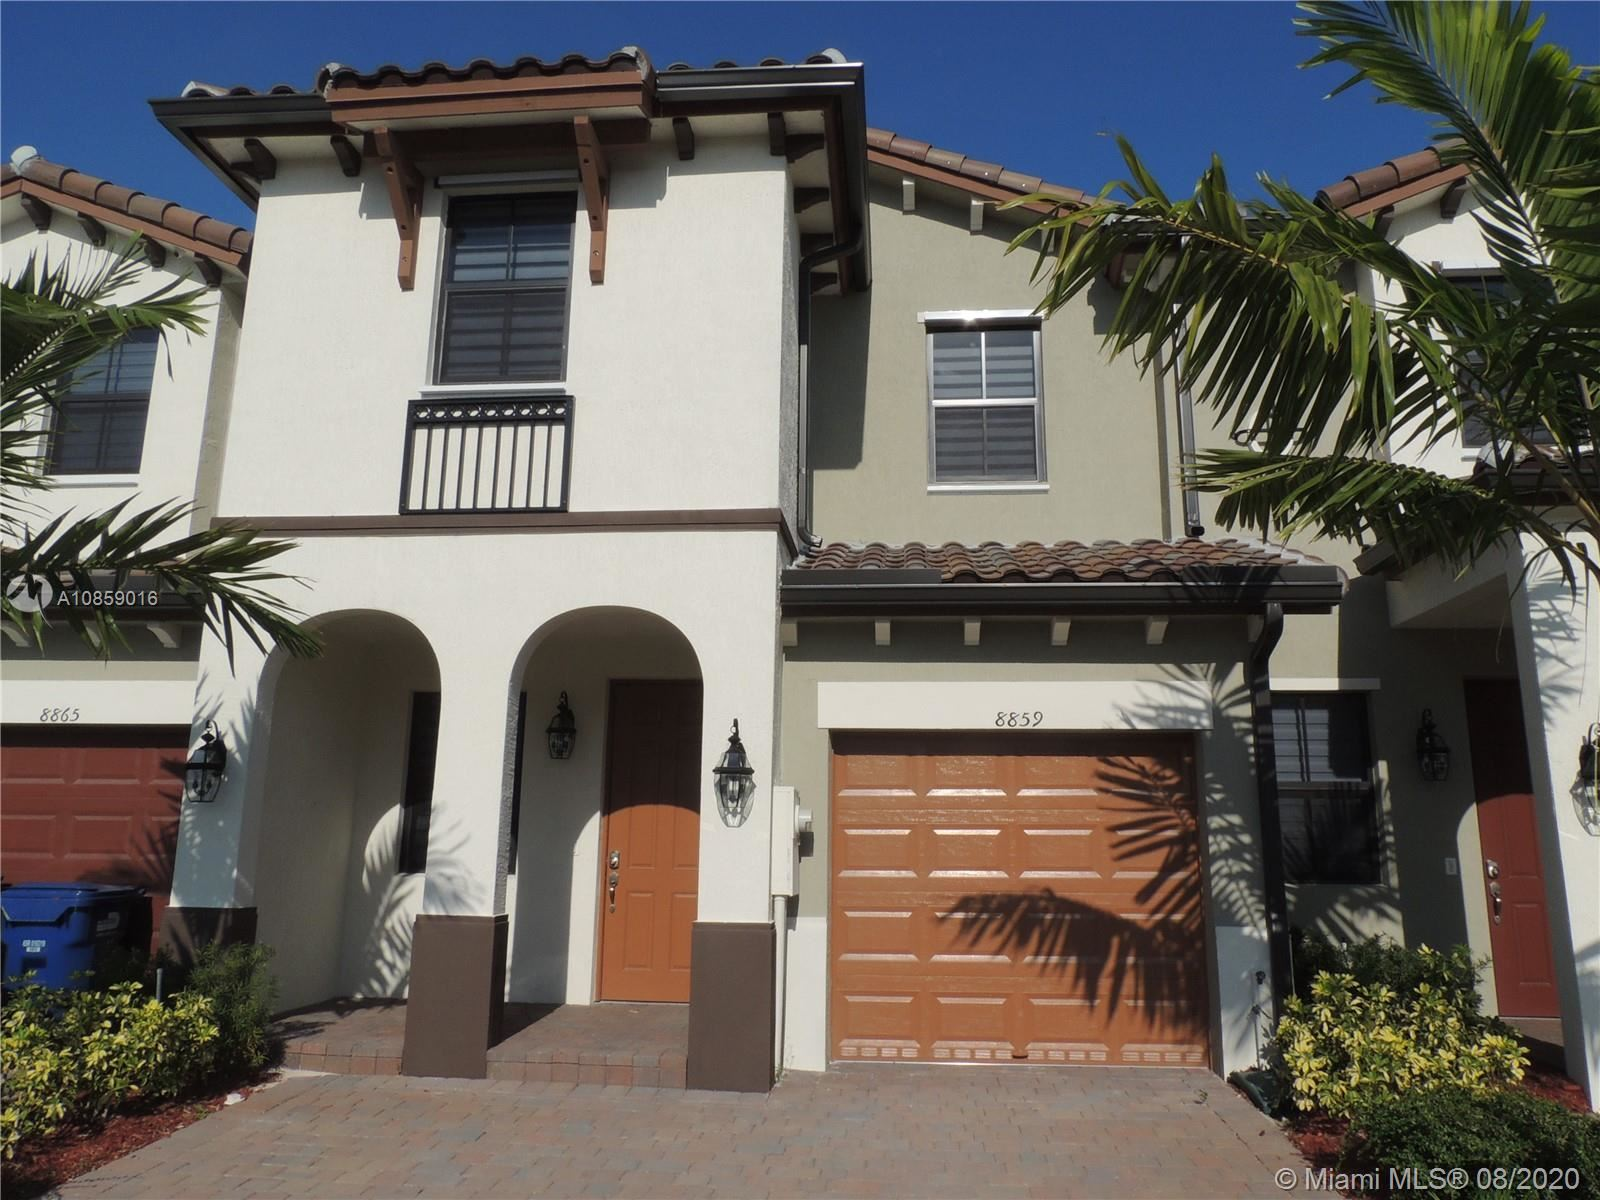 8859 NW 102nd Ct #8859, Doral, FL 33178 - #: A10859016